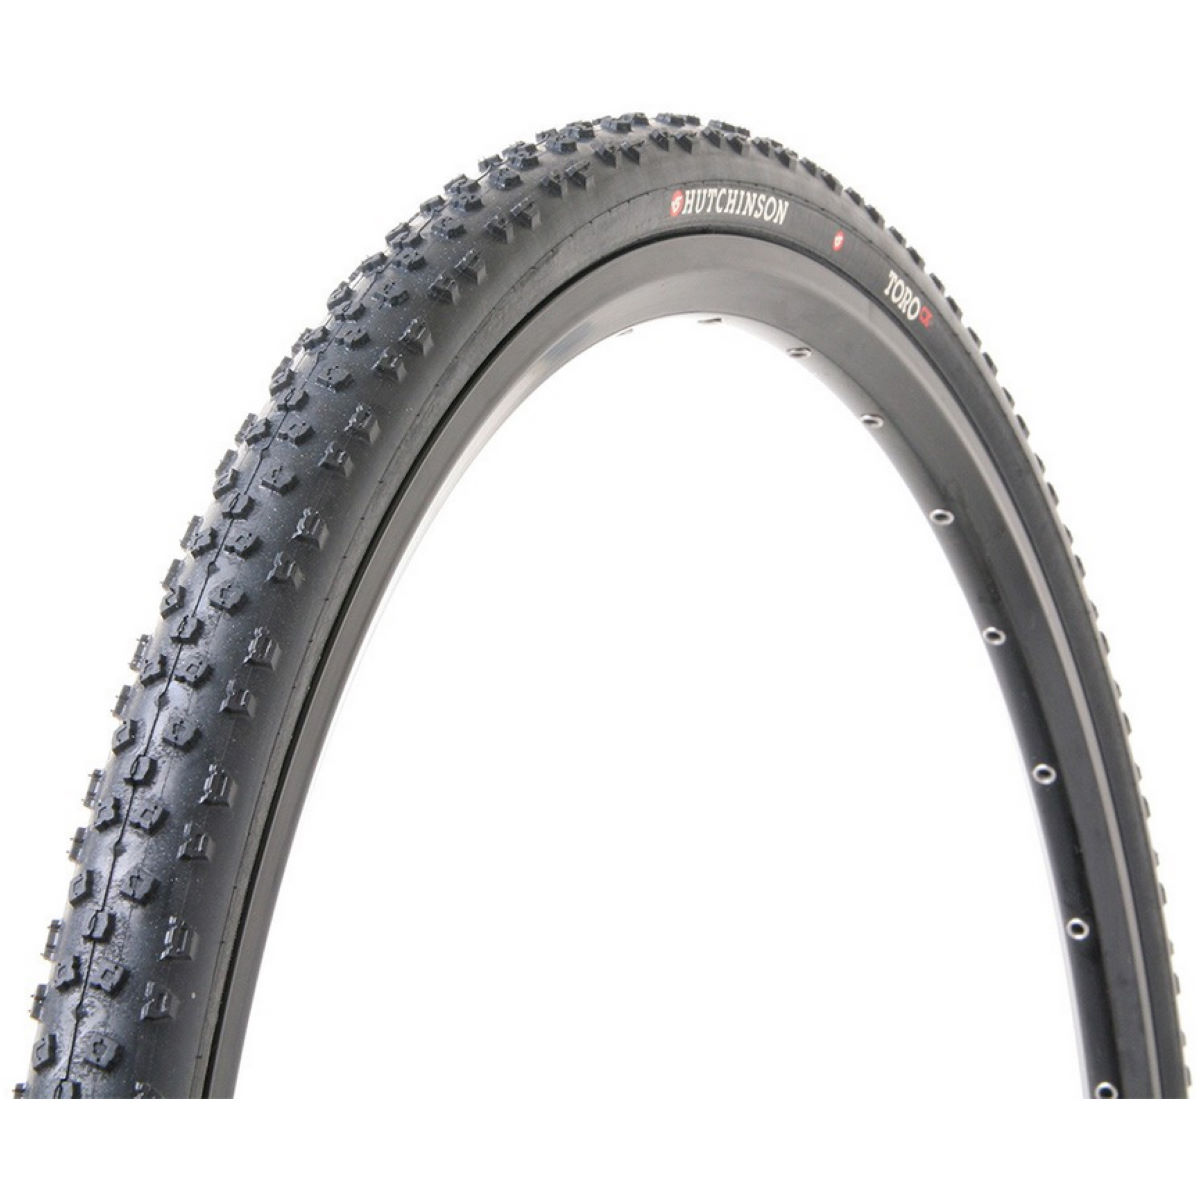 Pneu de cyclo-cross Hutchinson Toro (souple) - 700 x 32c 700c Noir